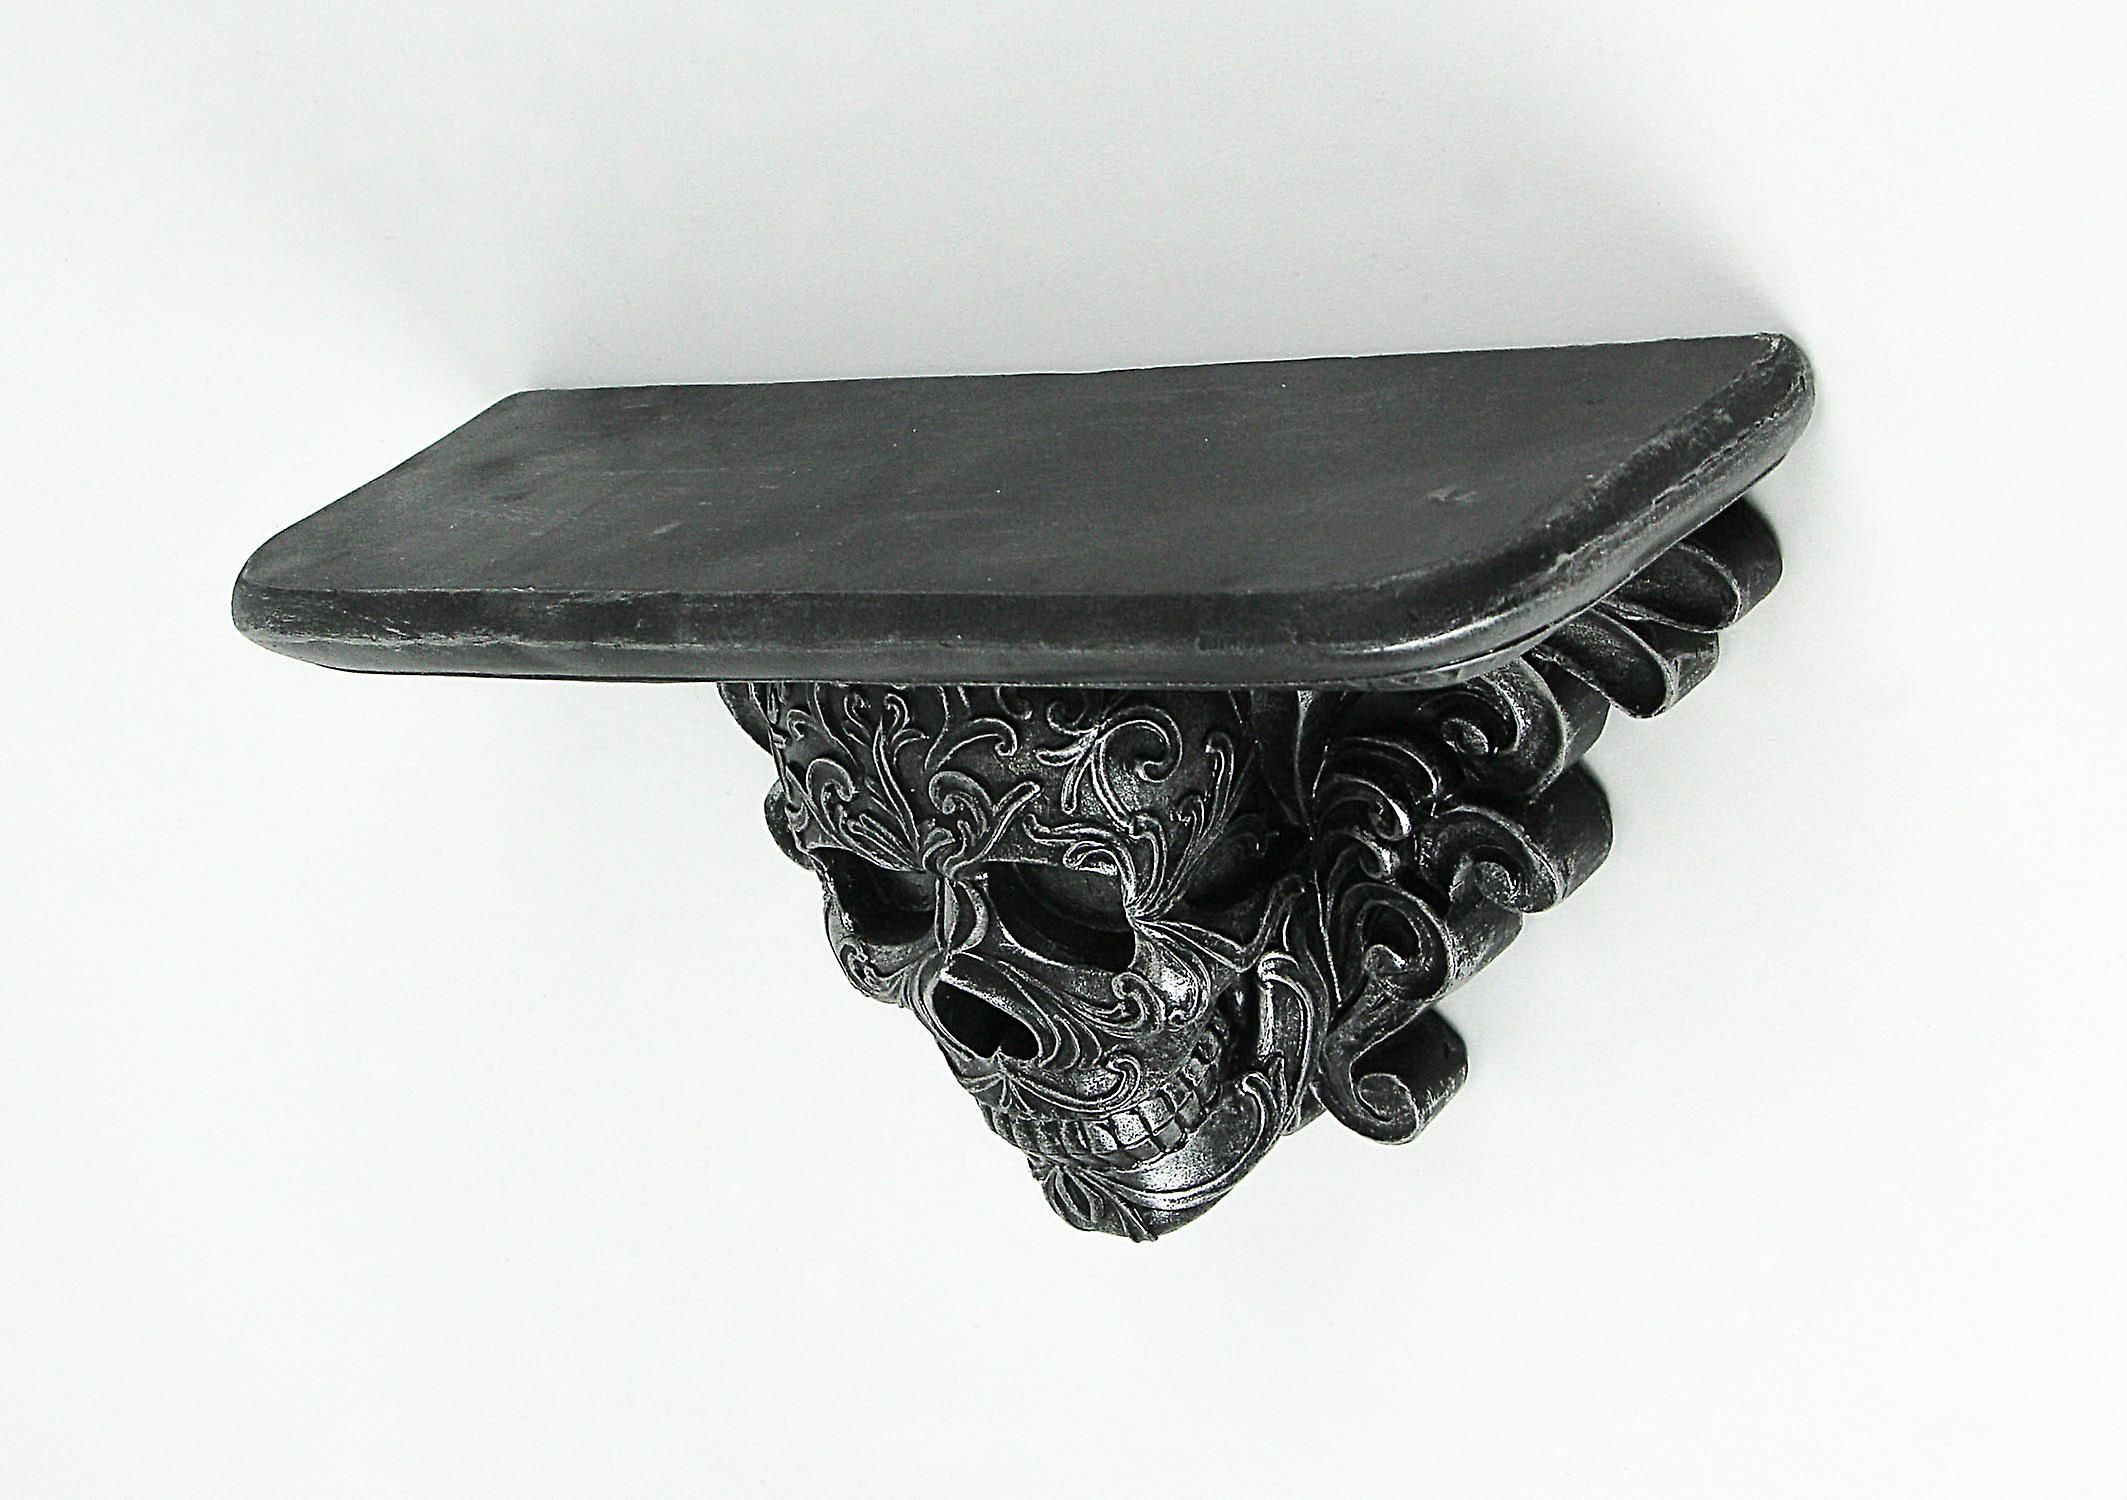 Graven Mantel Gothic Skull Design Decorative Wall Mounted Shelf 13 Inches Long